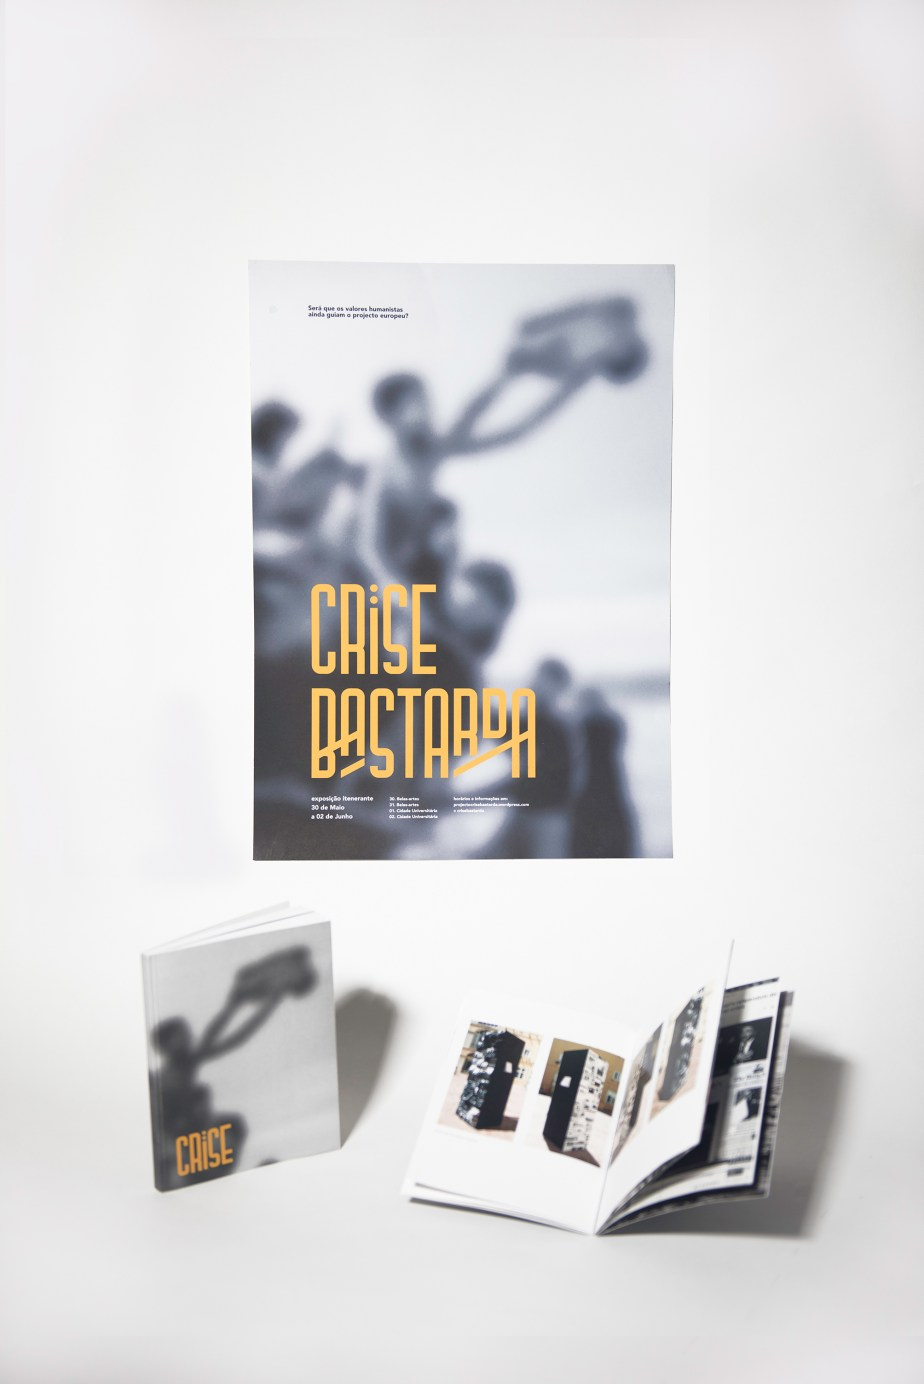 crise bastarda poster and book